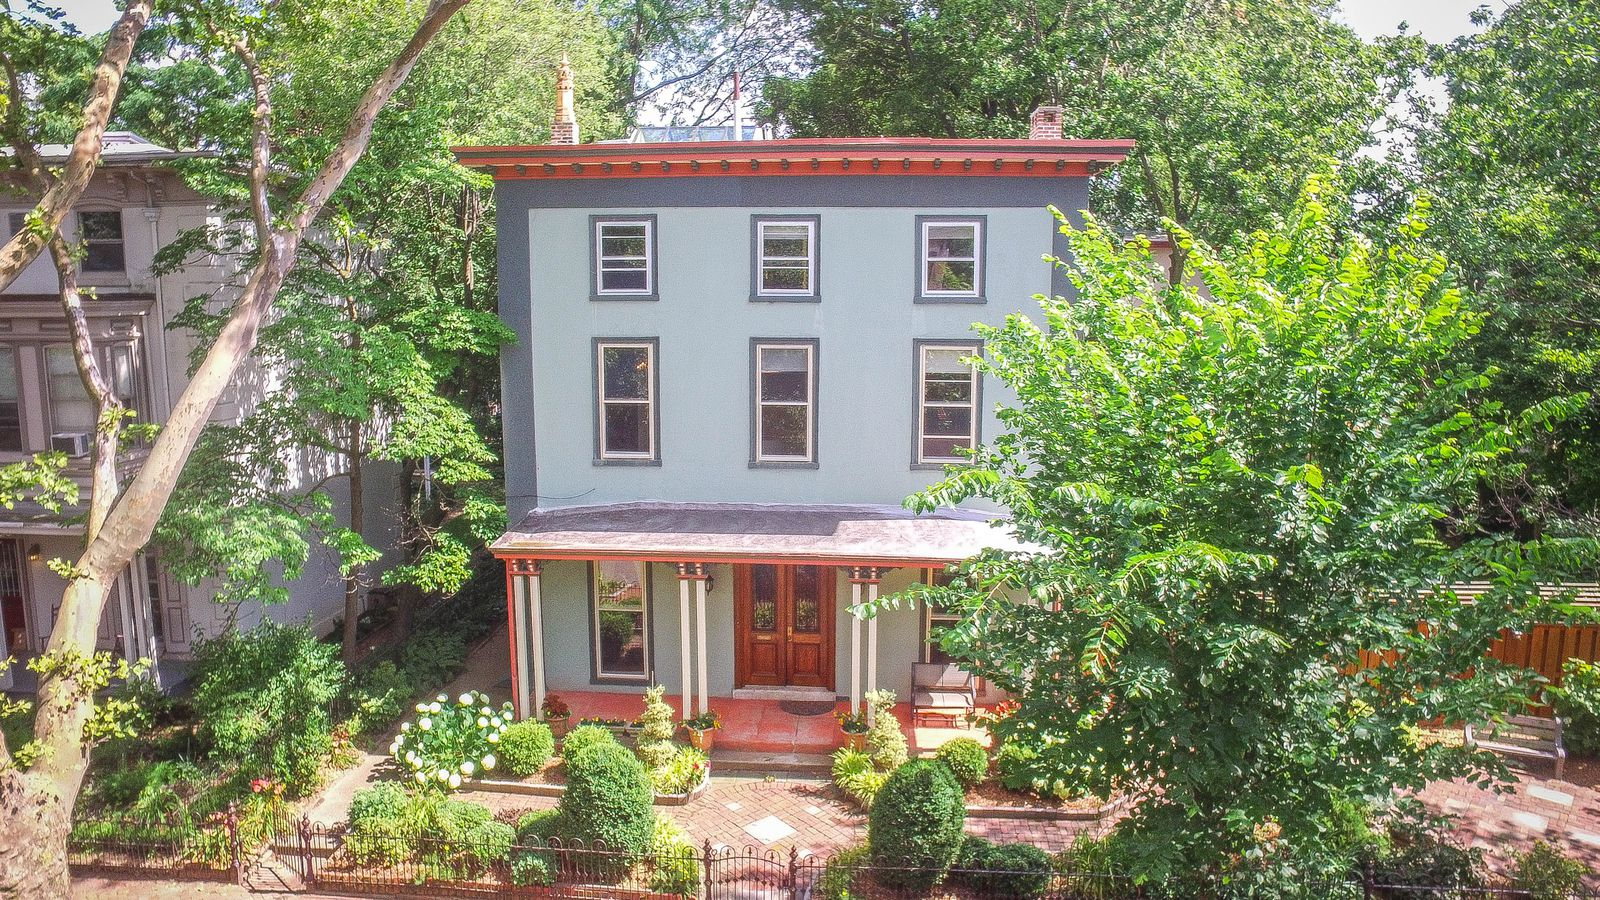 Historic italianate in powelton from 1860 asks just under for Italianate homes for sale